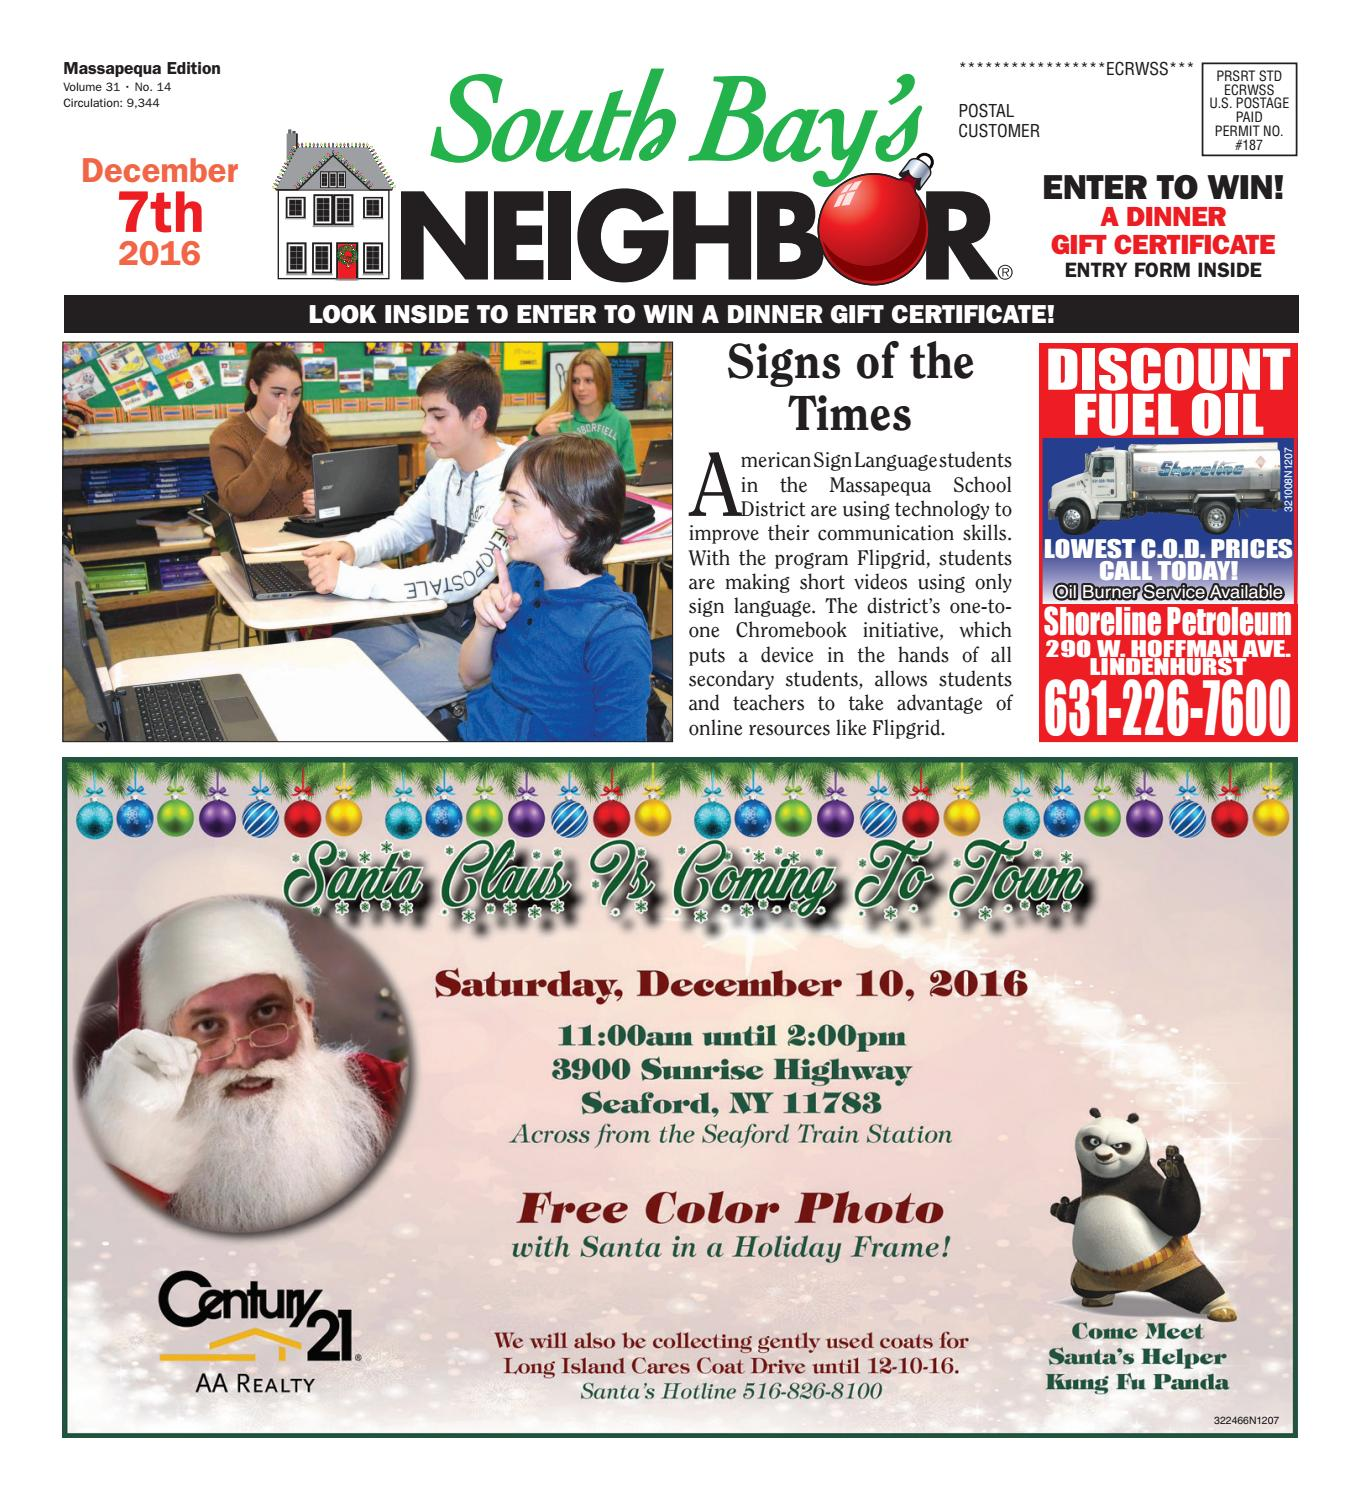 December 7 2016 Massapequa by South Bay s Neighbor Newspapers issuu